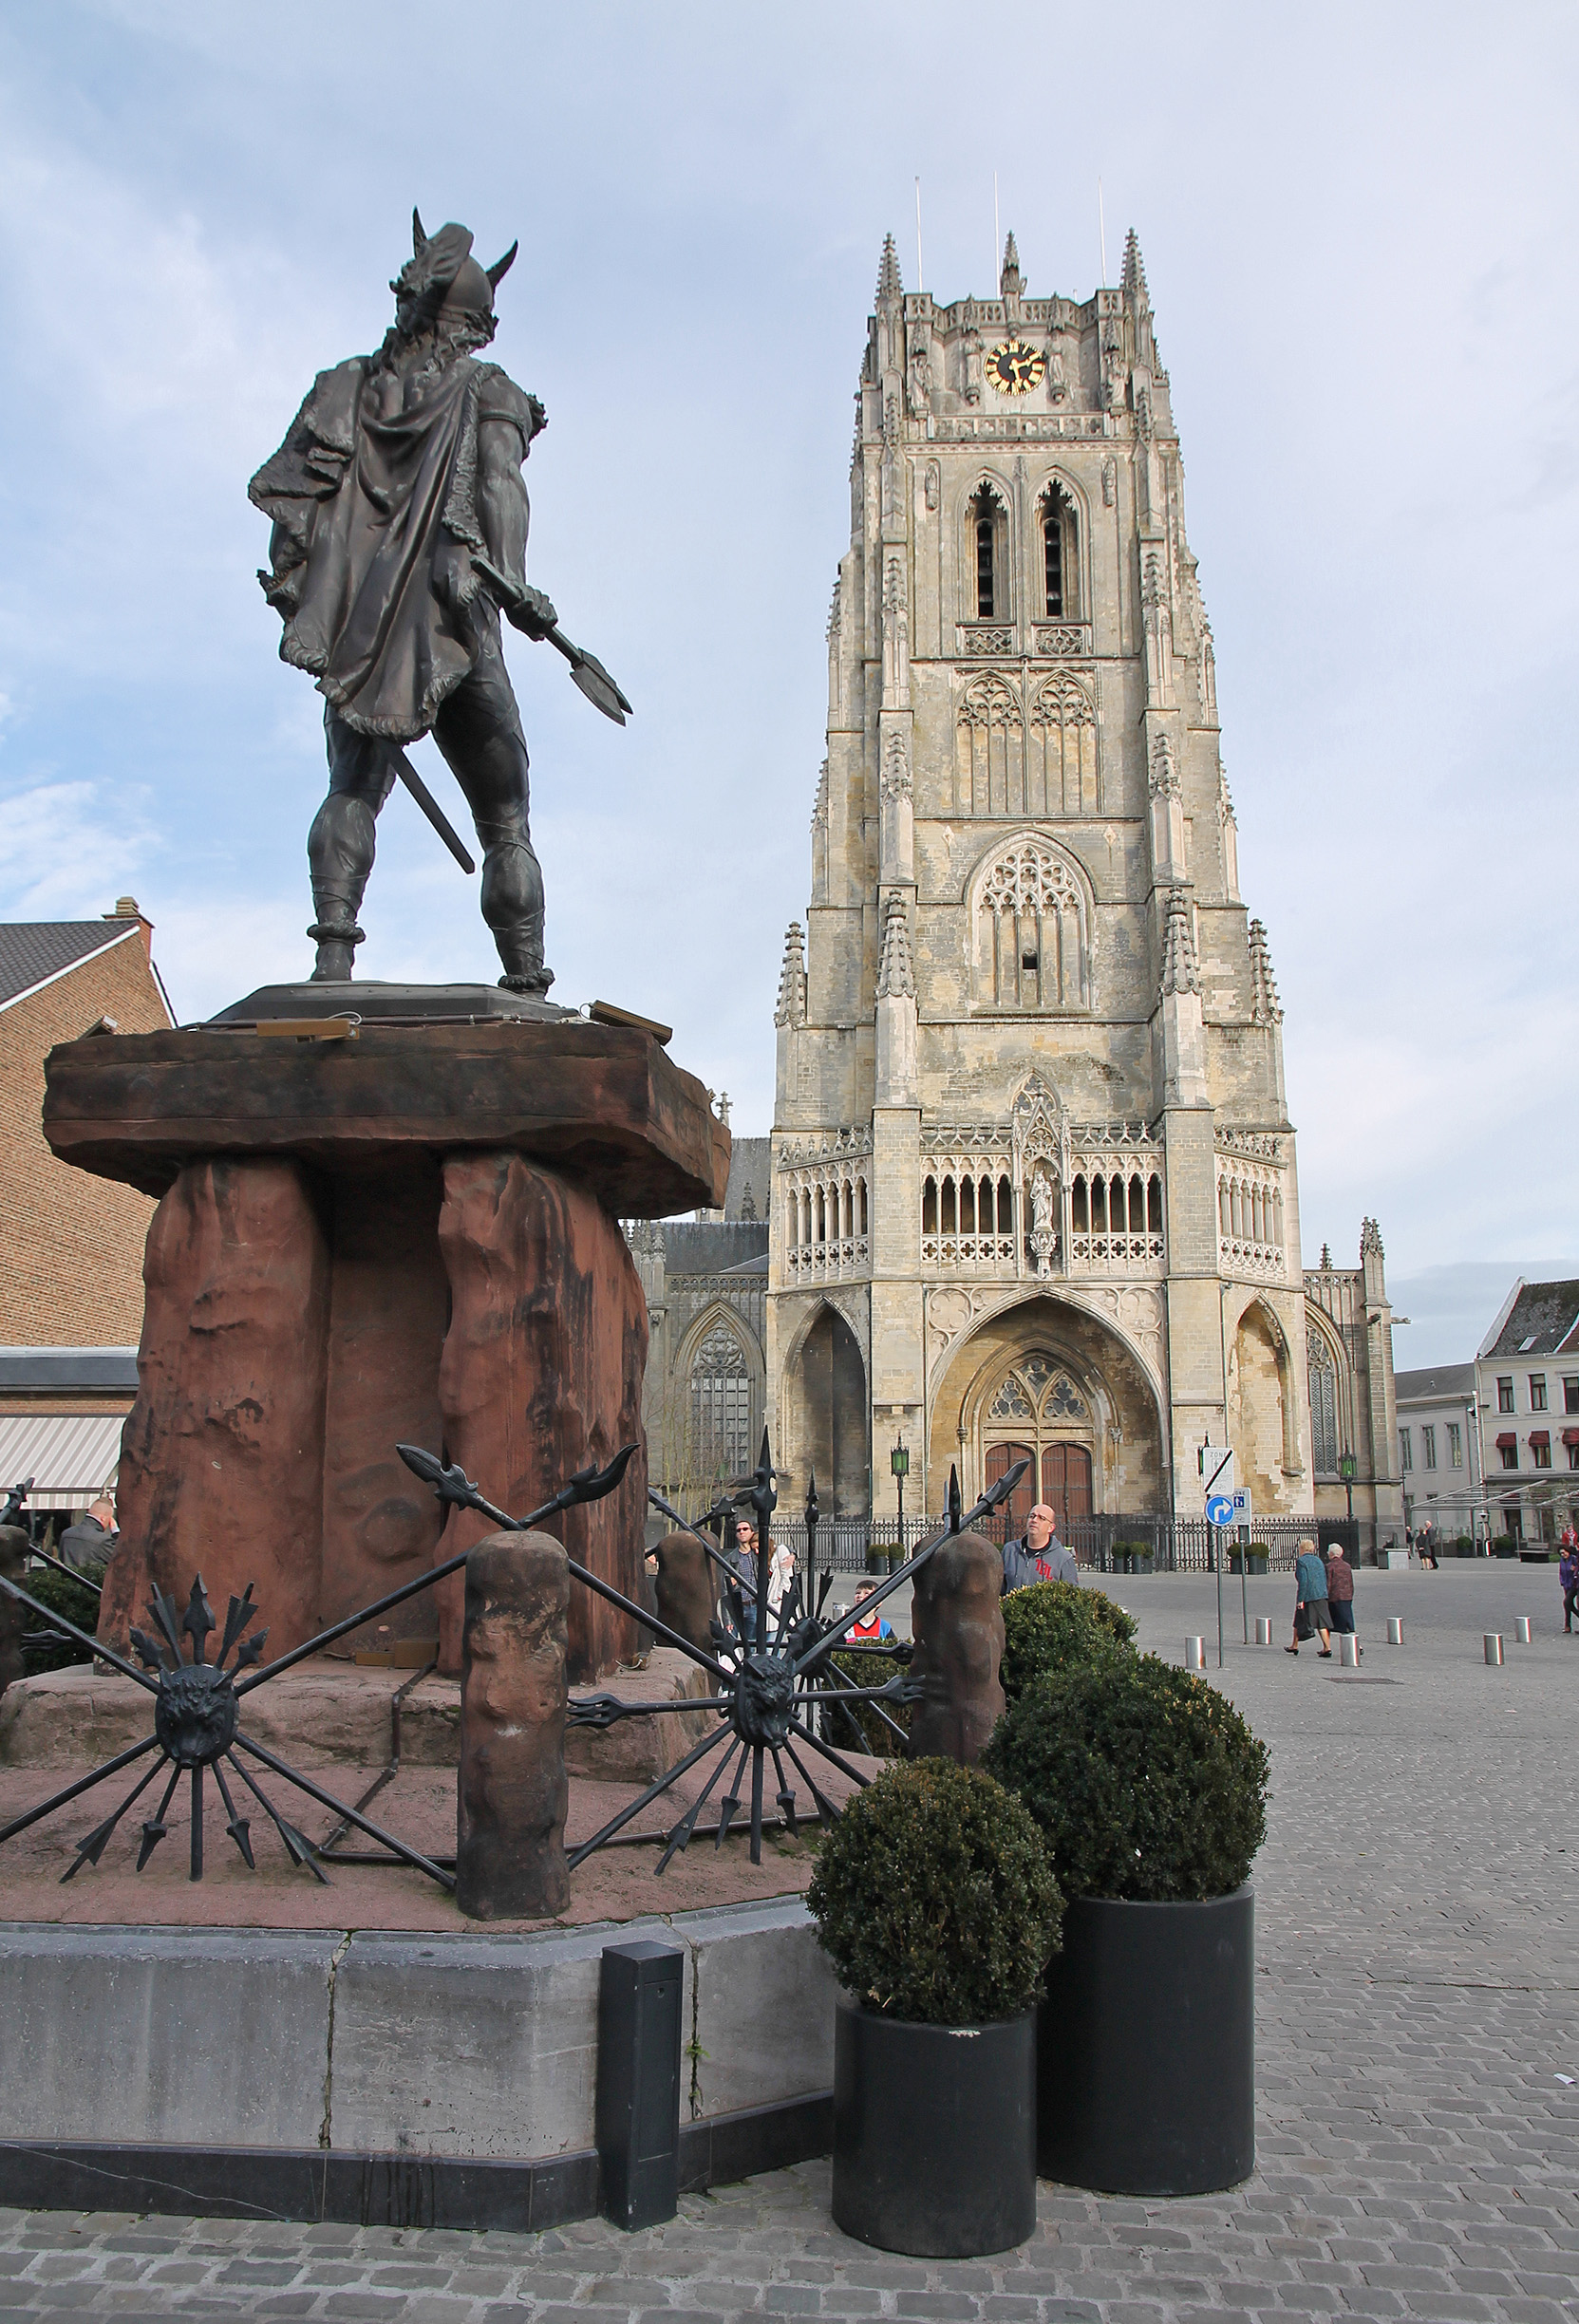 Ambiorix, leader of the Eburones tribe, has a pretty nice view of the belfry of Tongeren.